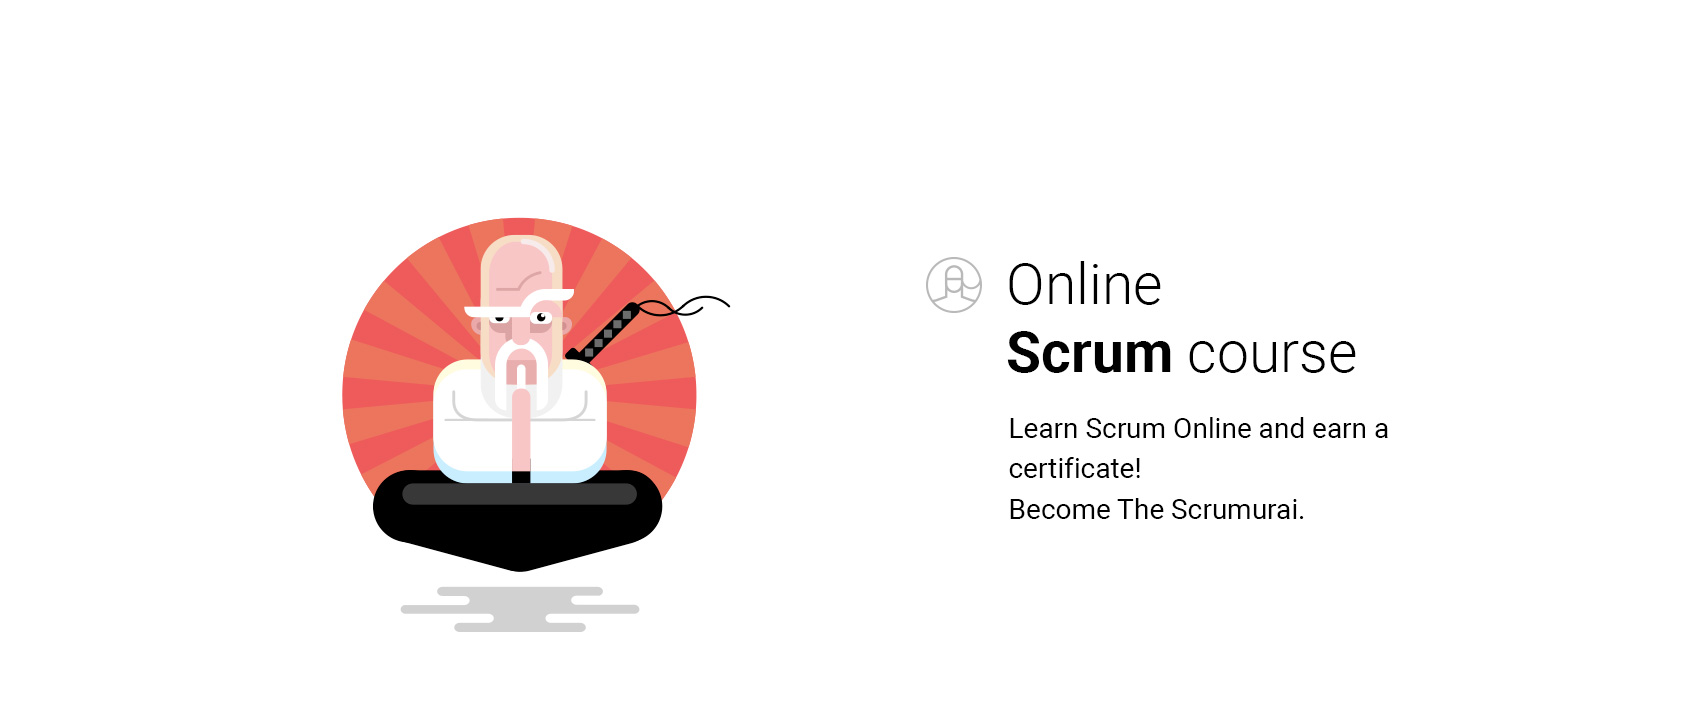 VivifyScrum EDU Illustration Scrumurai